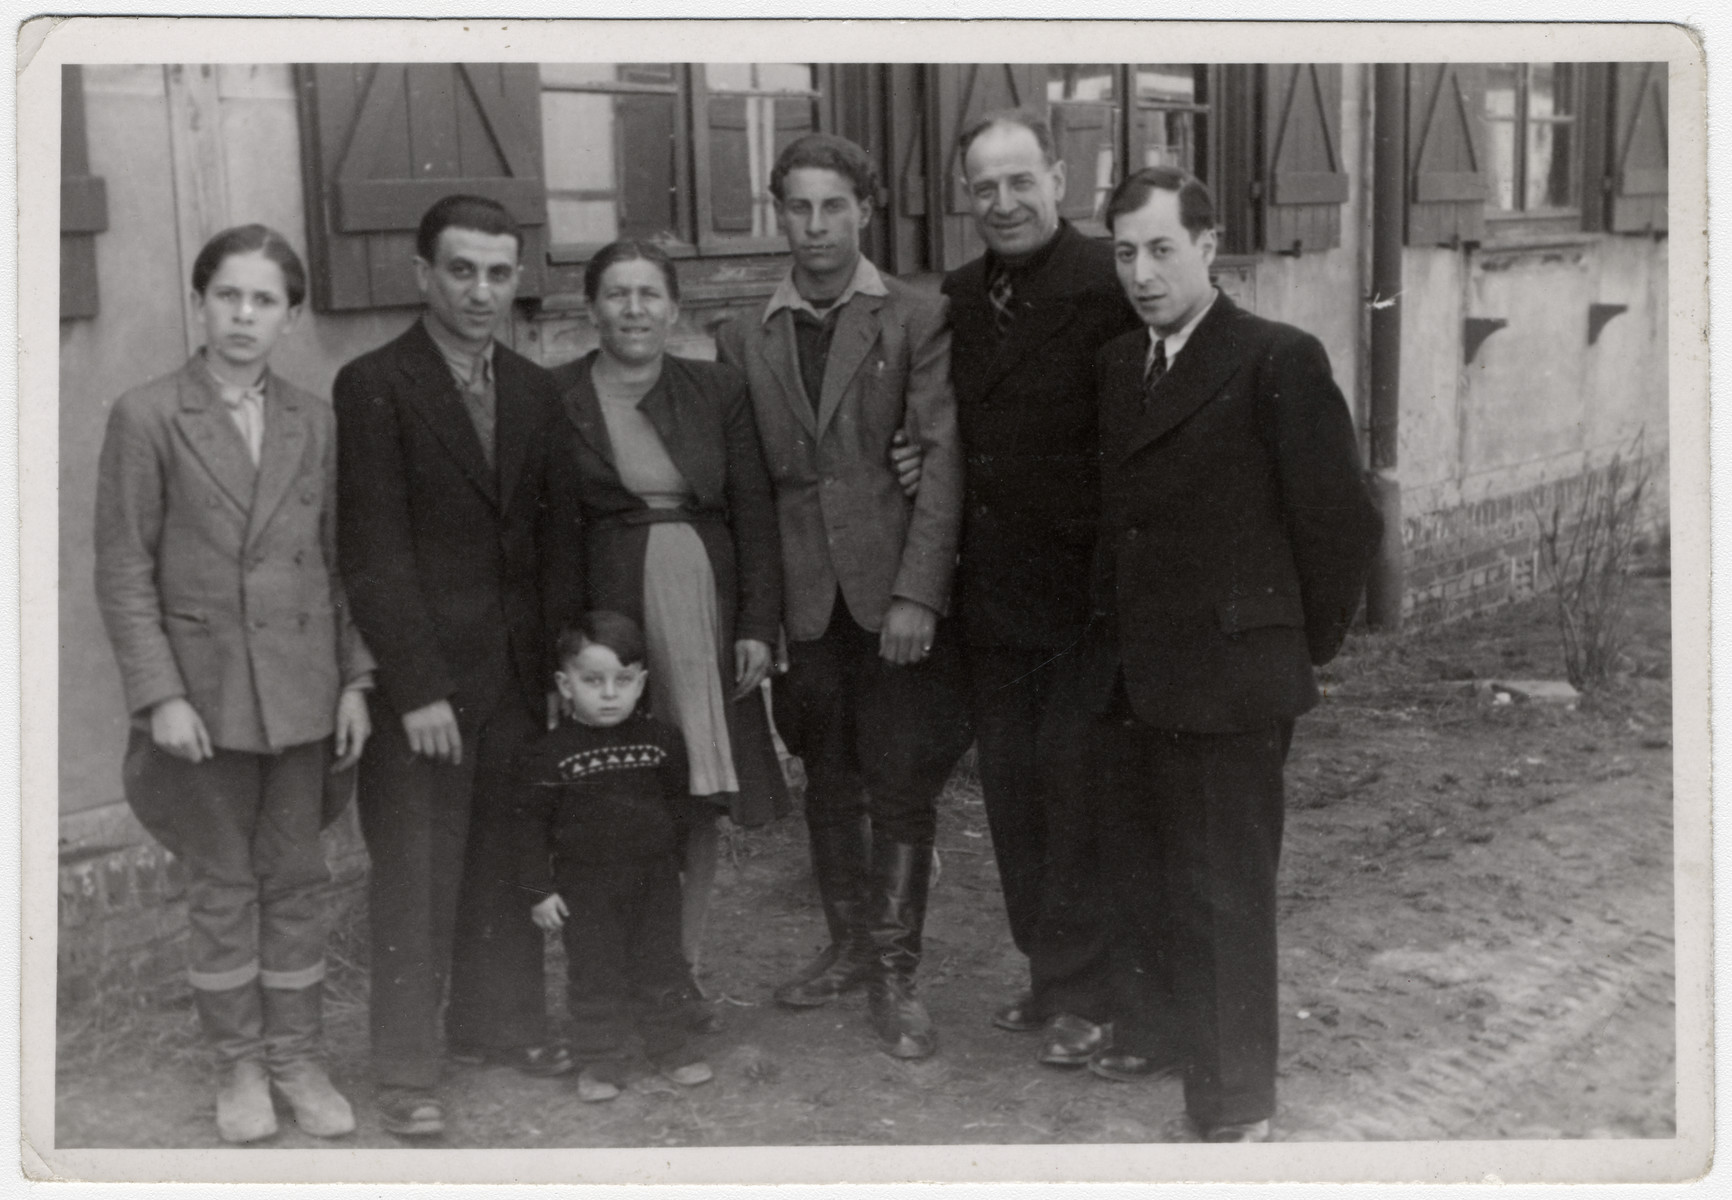 Group portrait of an extended Jewish family in the Ziegenhain displaced persons' camp.  From left to right are Mosche Rynecki, Mosche Zetelni (a cousin) and his wife, David Rynecki, Ezriel Rynecki and another cousin, Yosef Rynecki.